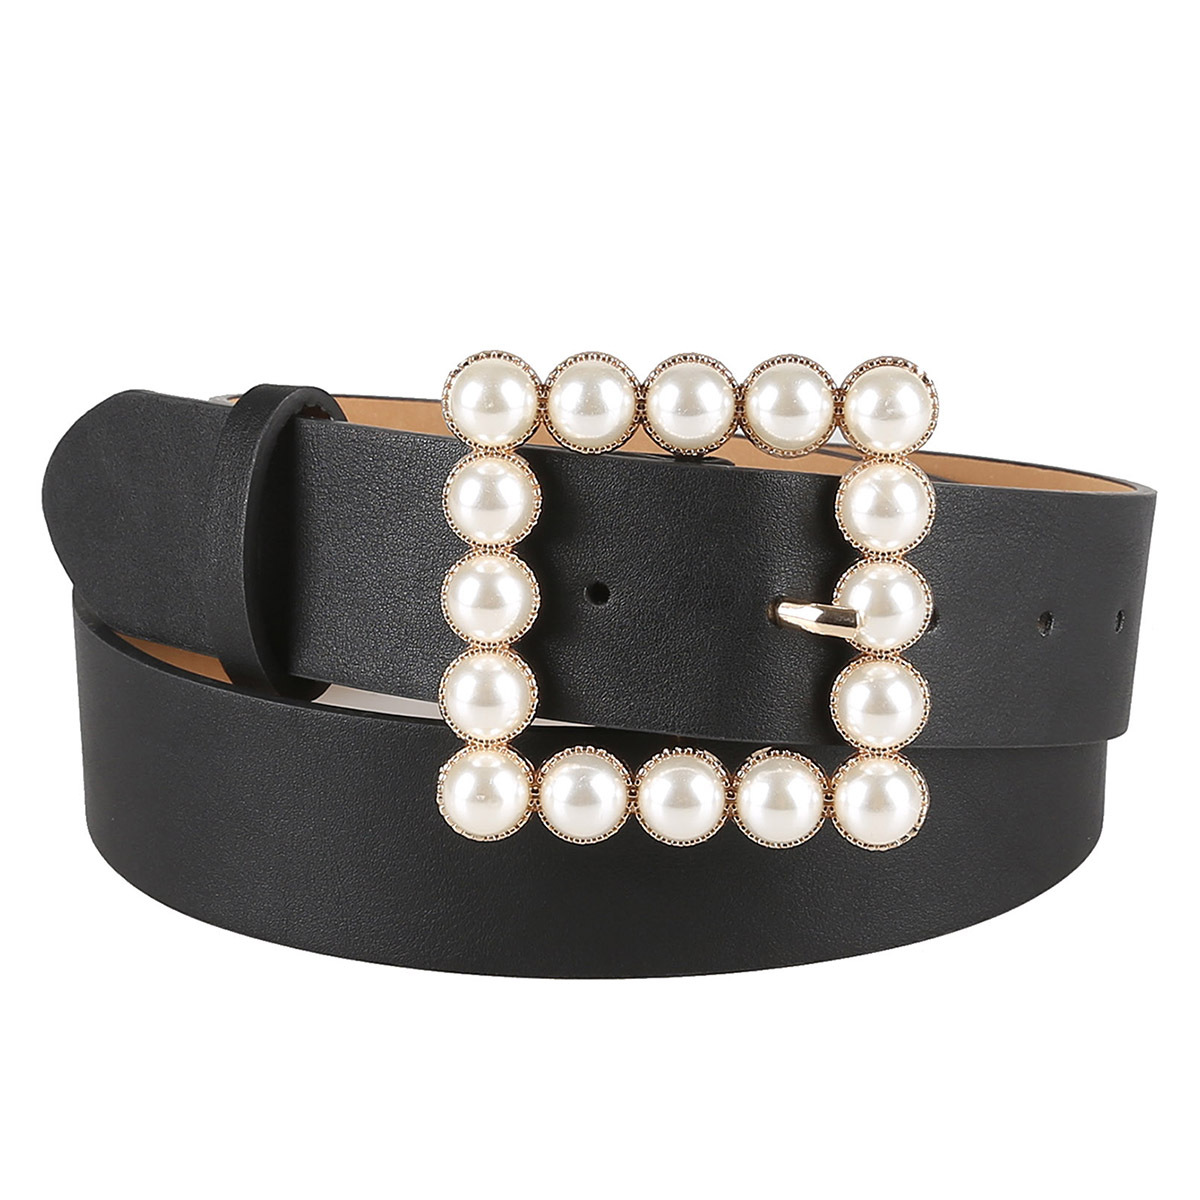 Pearl Decorative Belt Ladies Pin Buckle Pearl Belts Women's Casual Solid Pu Leather Thin Belt Luxury Belts Women Designer Brand